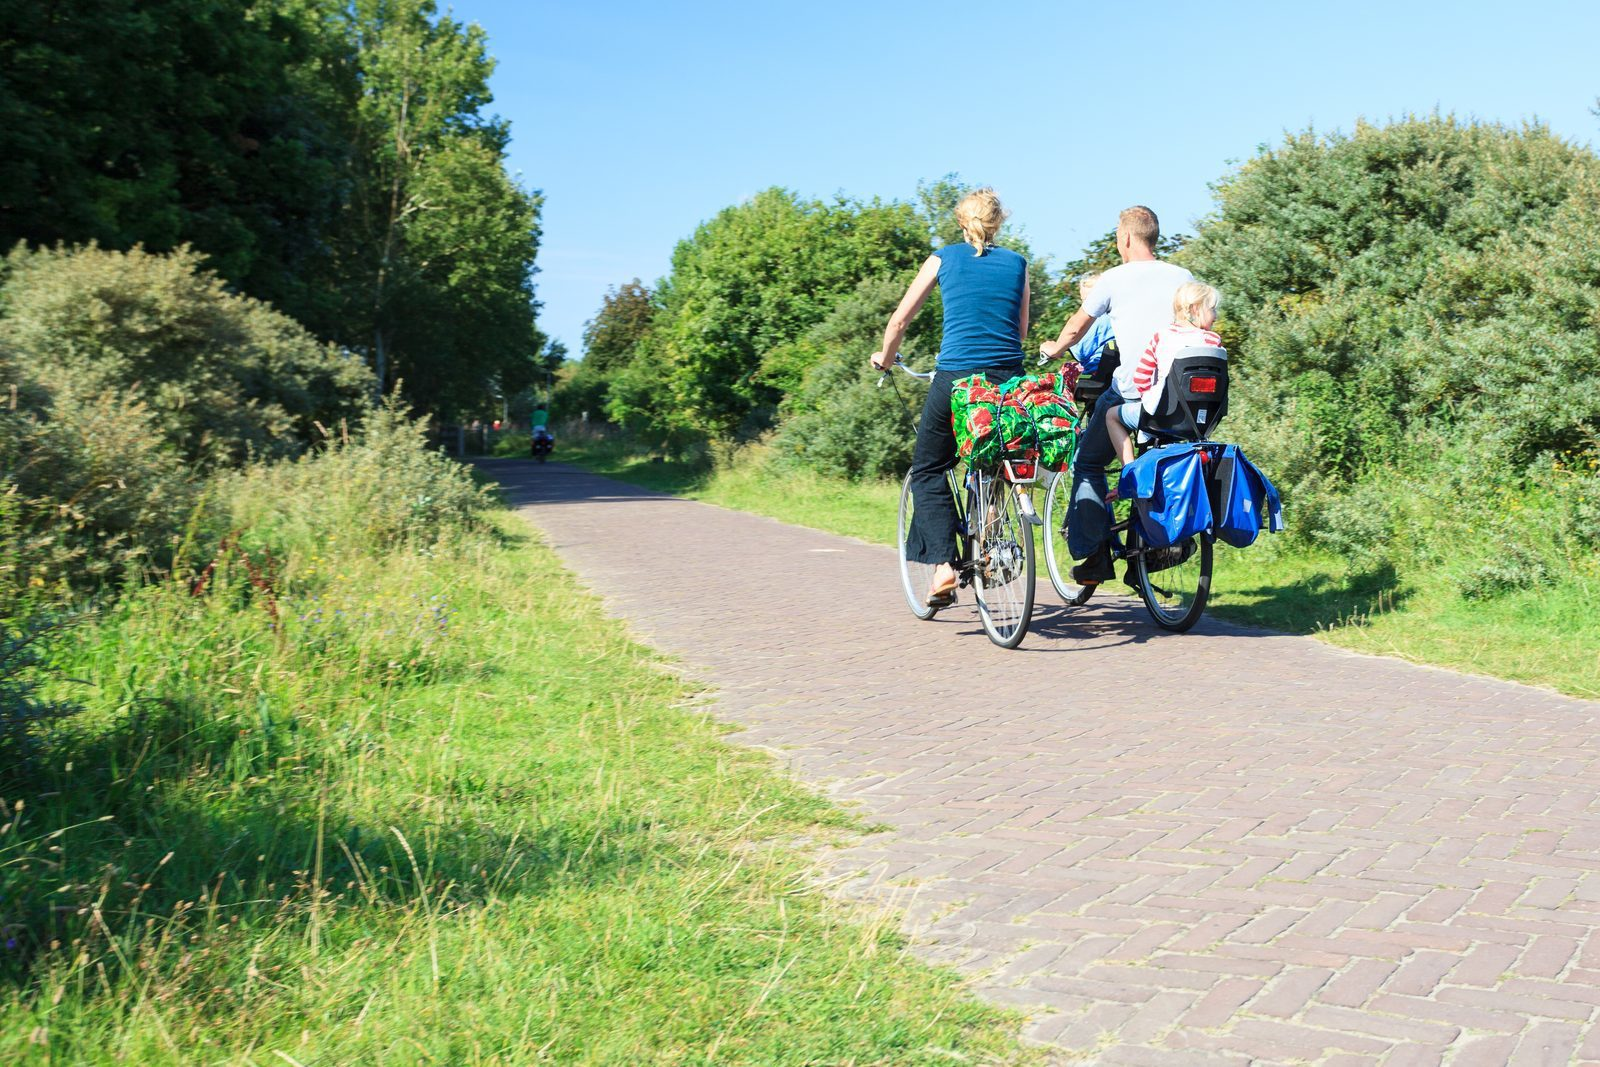 Cycling in the Achterhoek